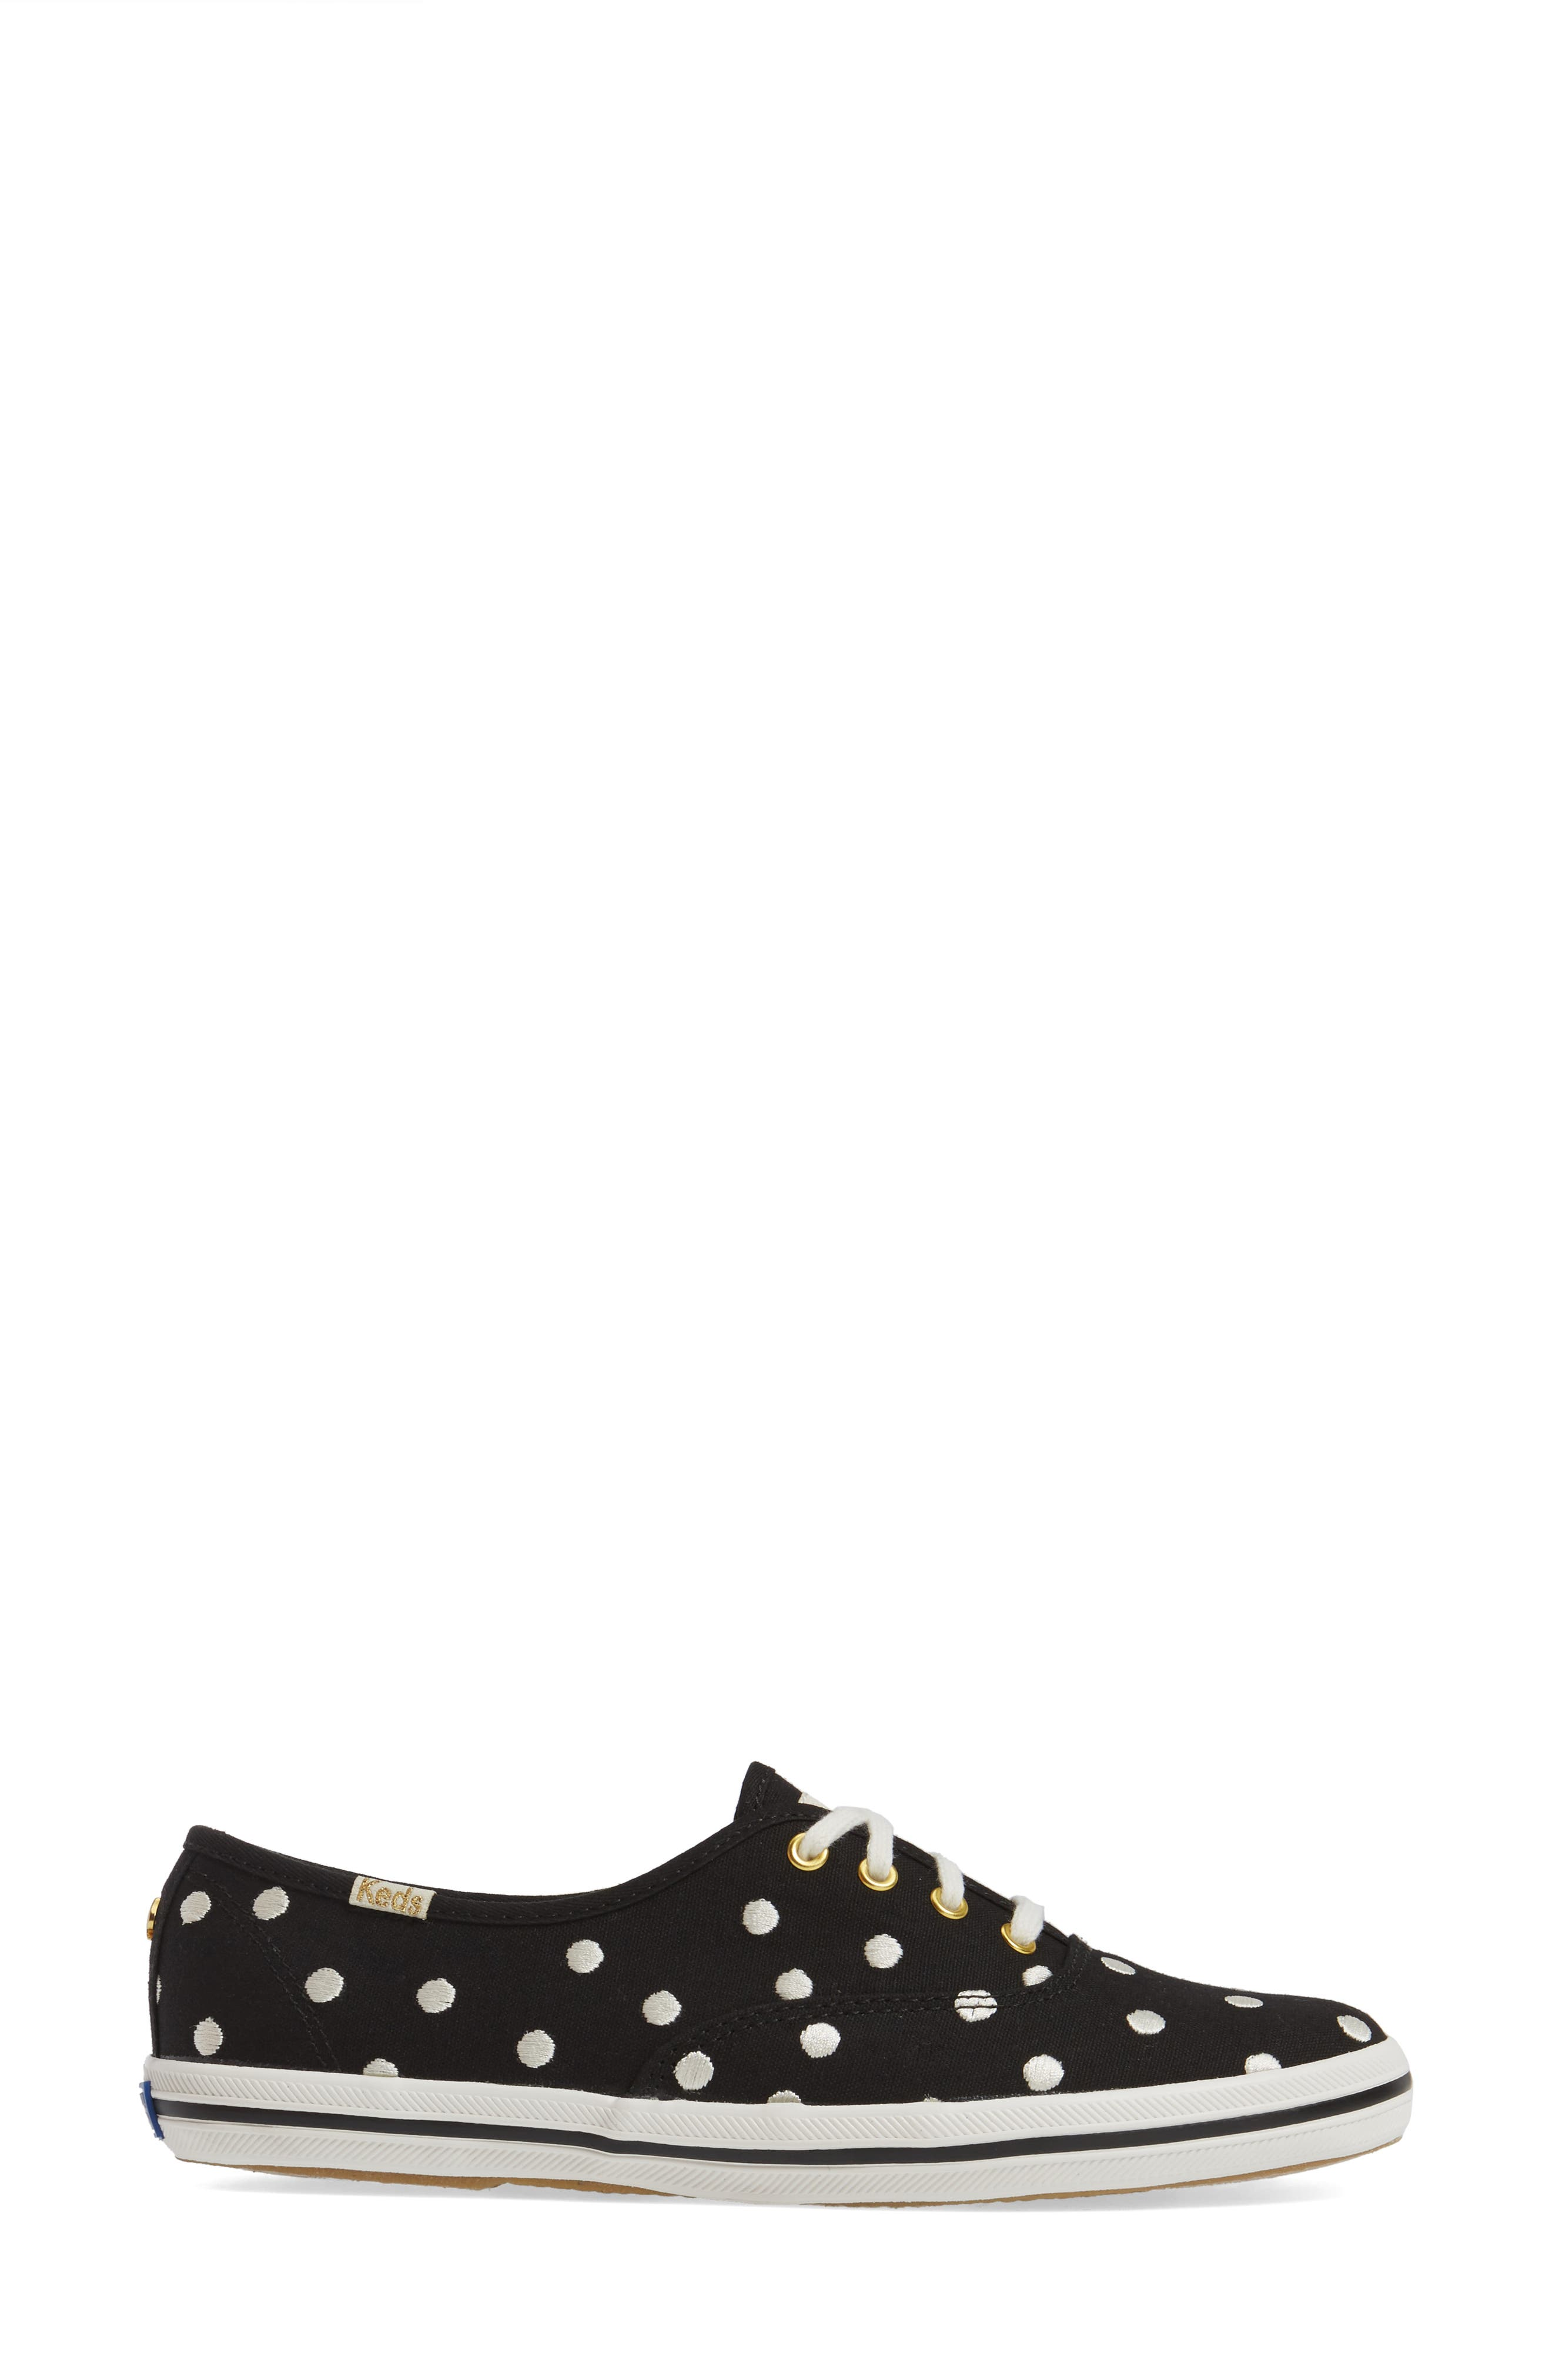 Keds<sup>®</sup> x kate spade new york champion sneaker,                             Alternate thumbnail 9, color,